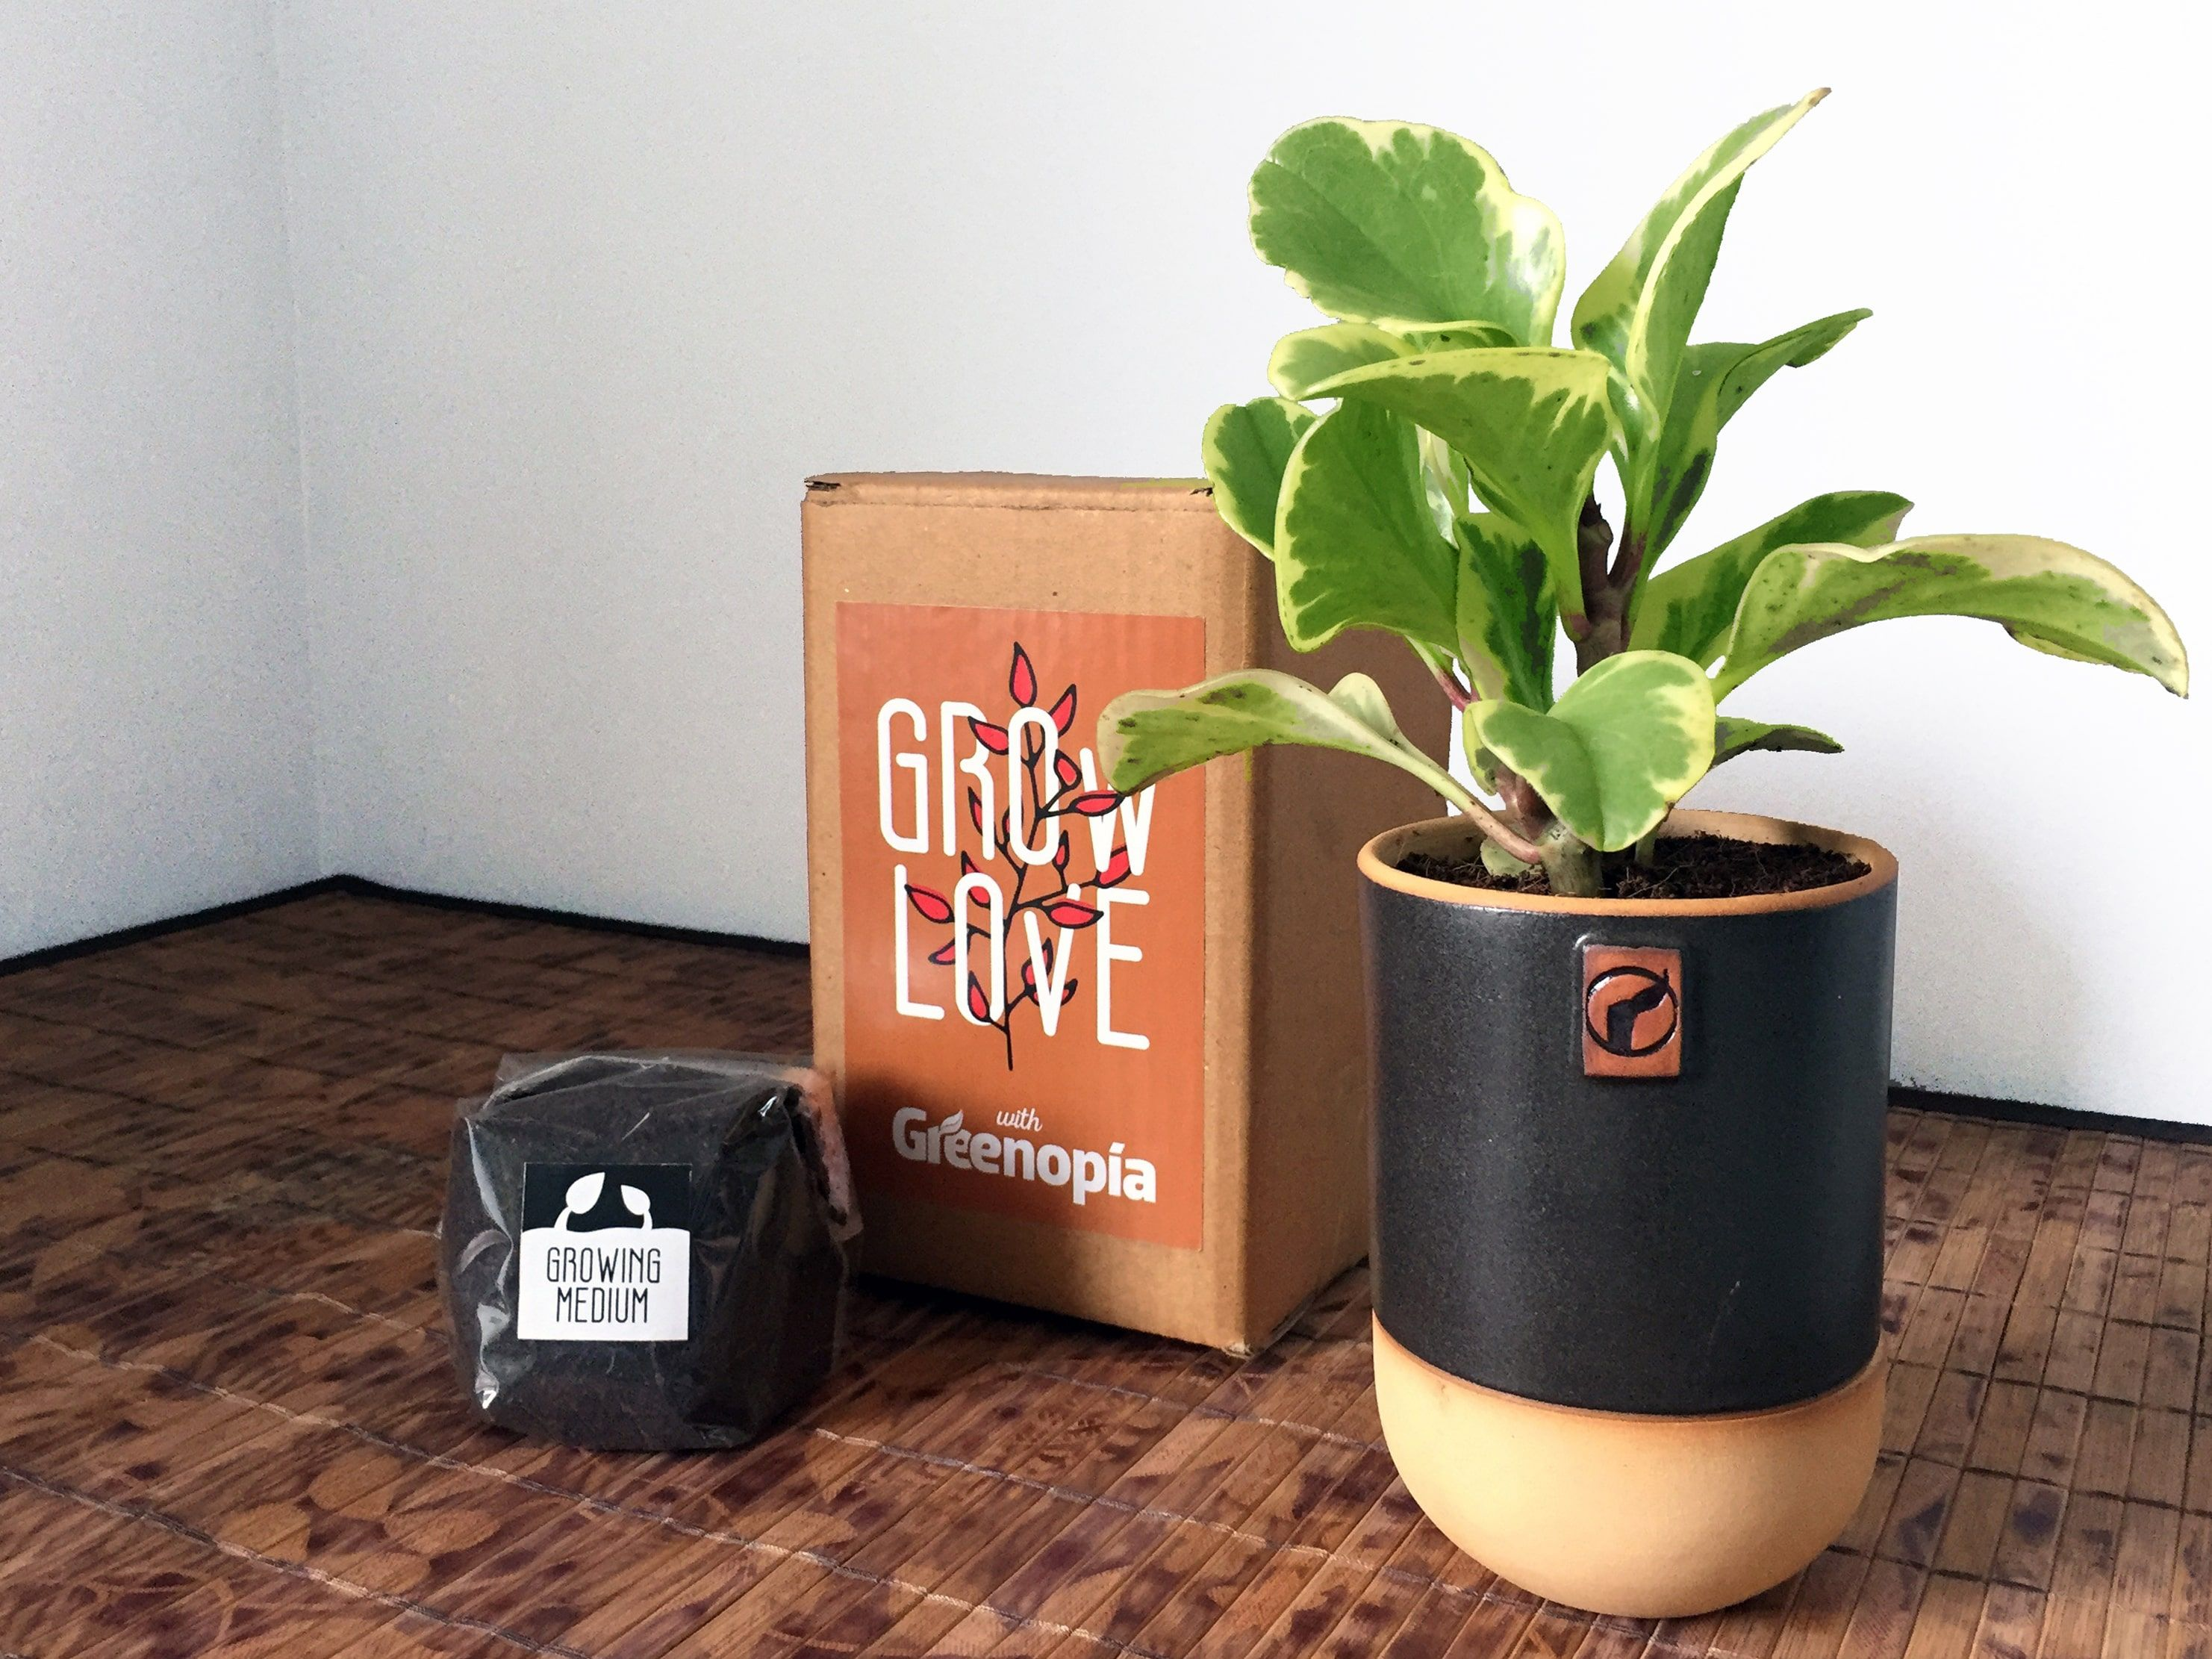 Growlove Self Watering Kit Aircleaningplant1 Graphite Pots Planters Garden Home Décor